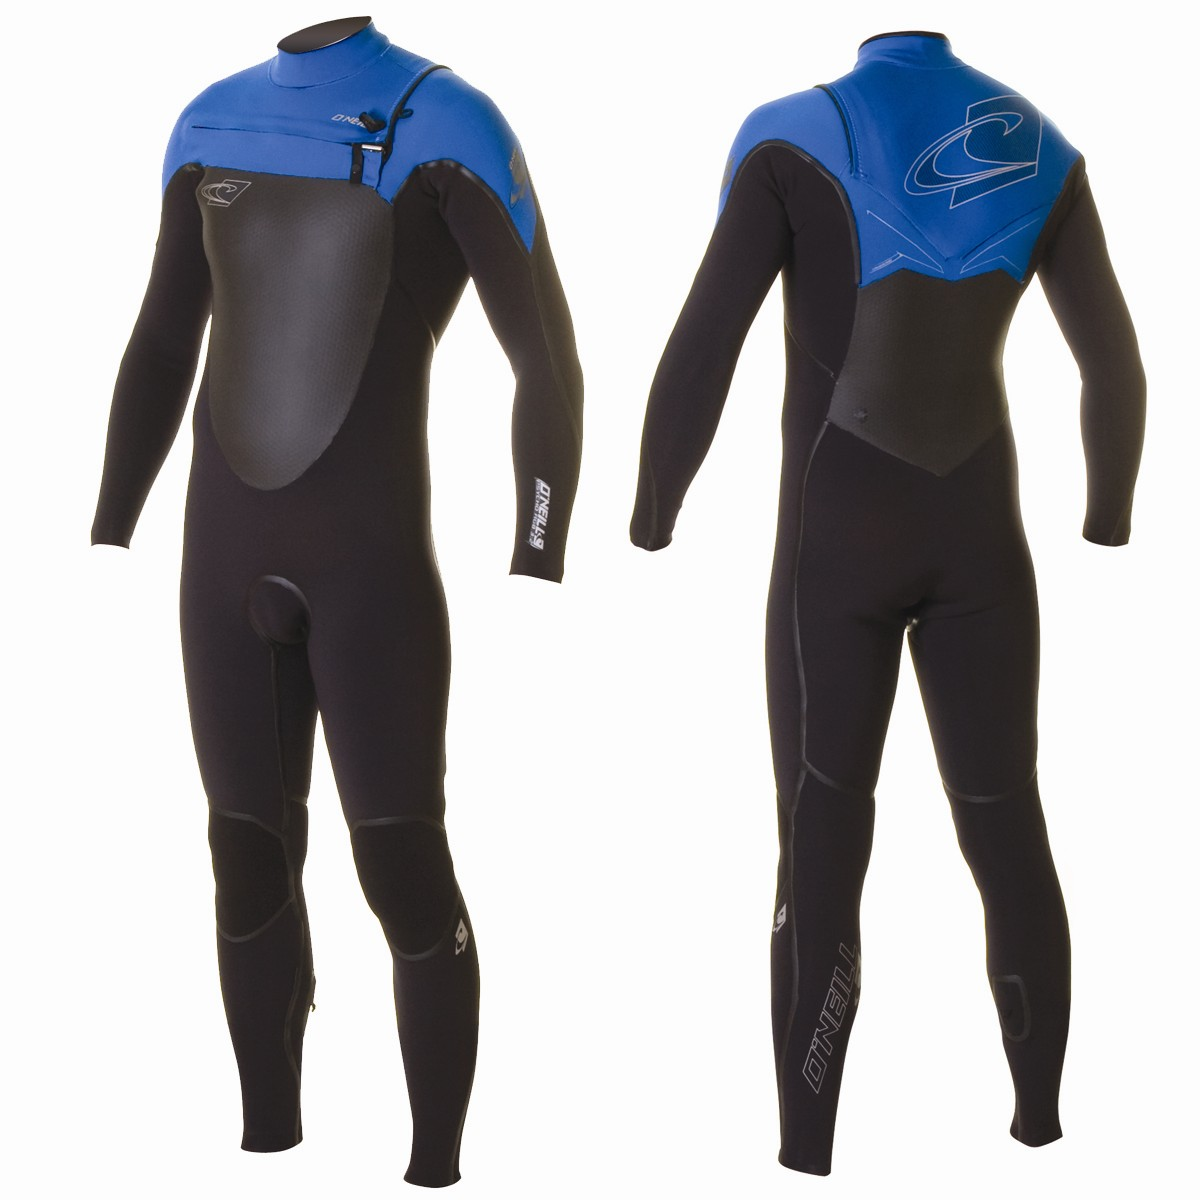 O'neill Wetsuit Psycho RG8